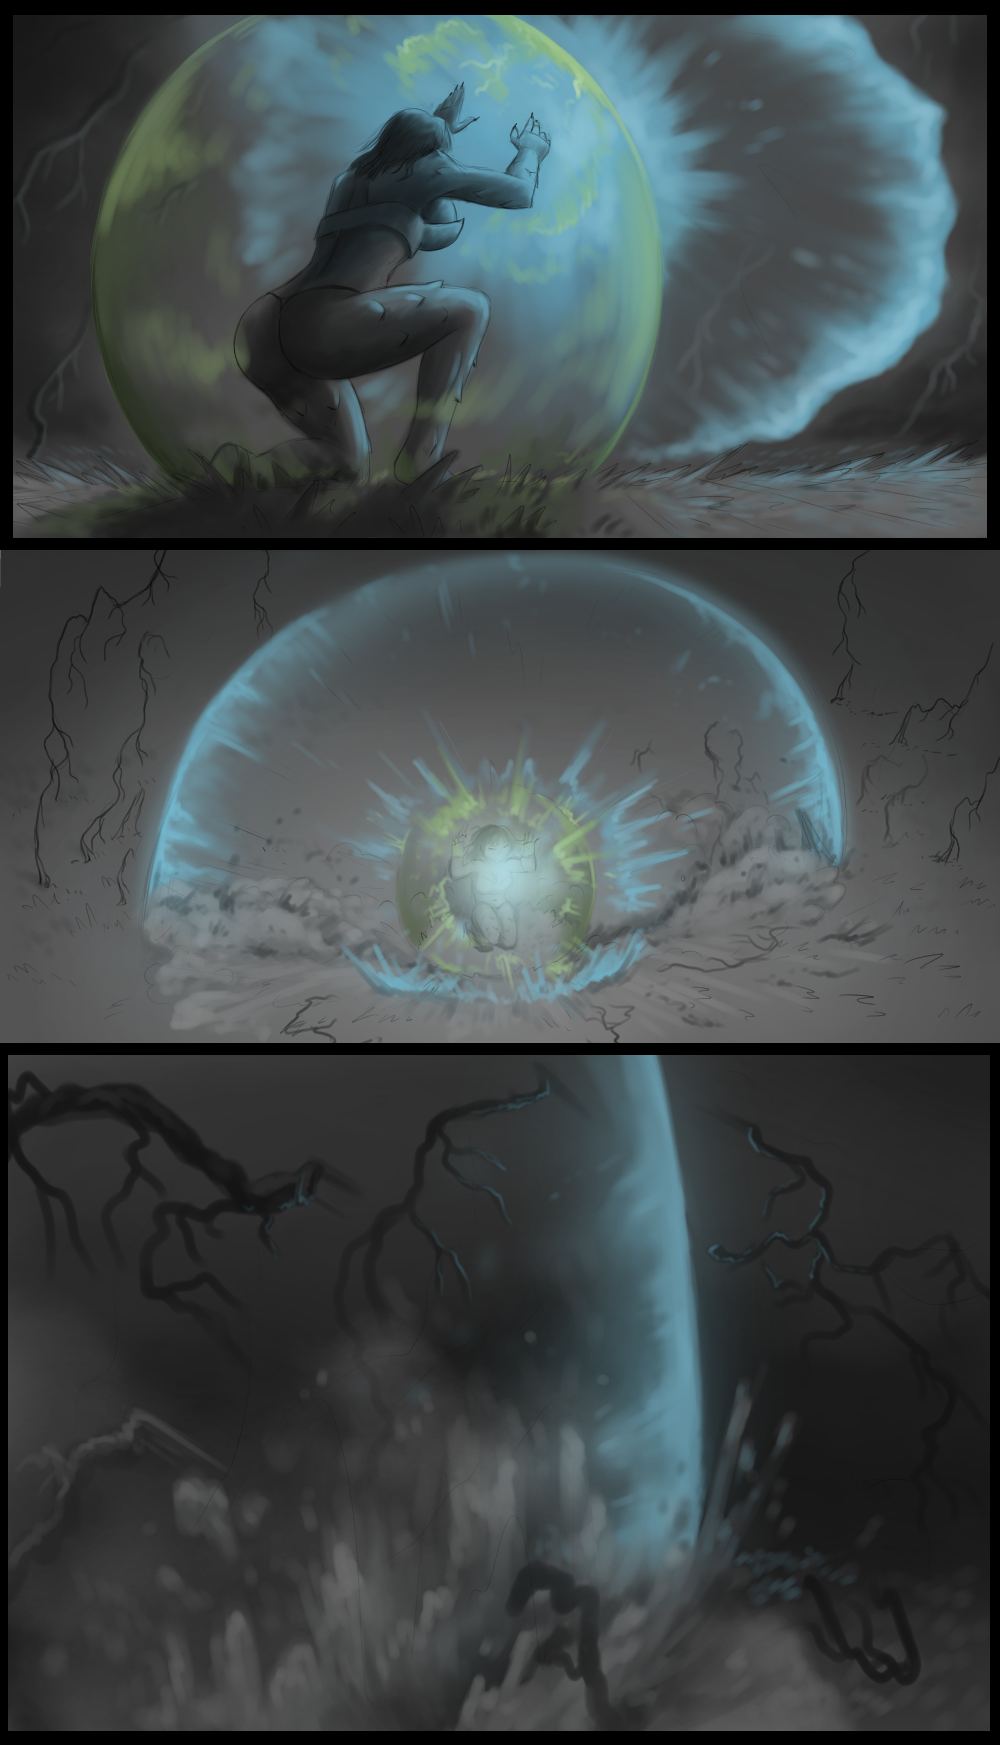 Page 85 - Battle against Glowslimer (Part 32)